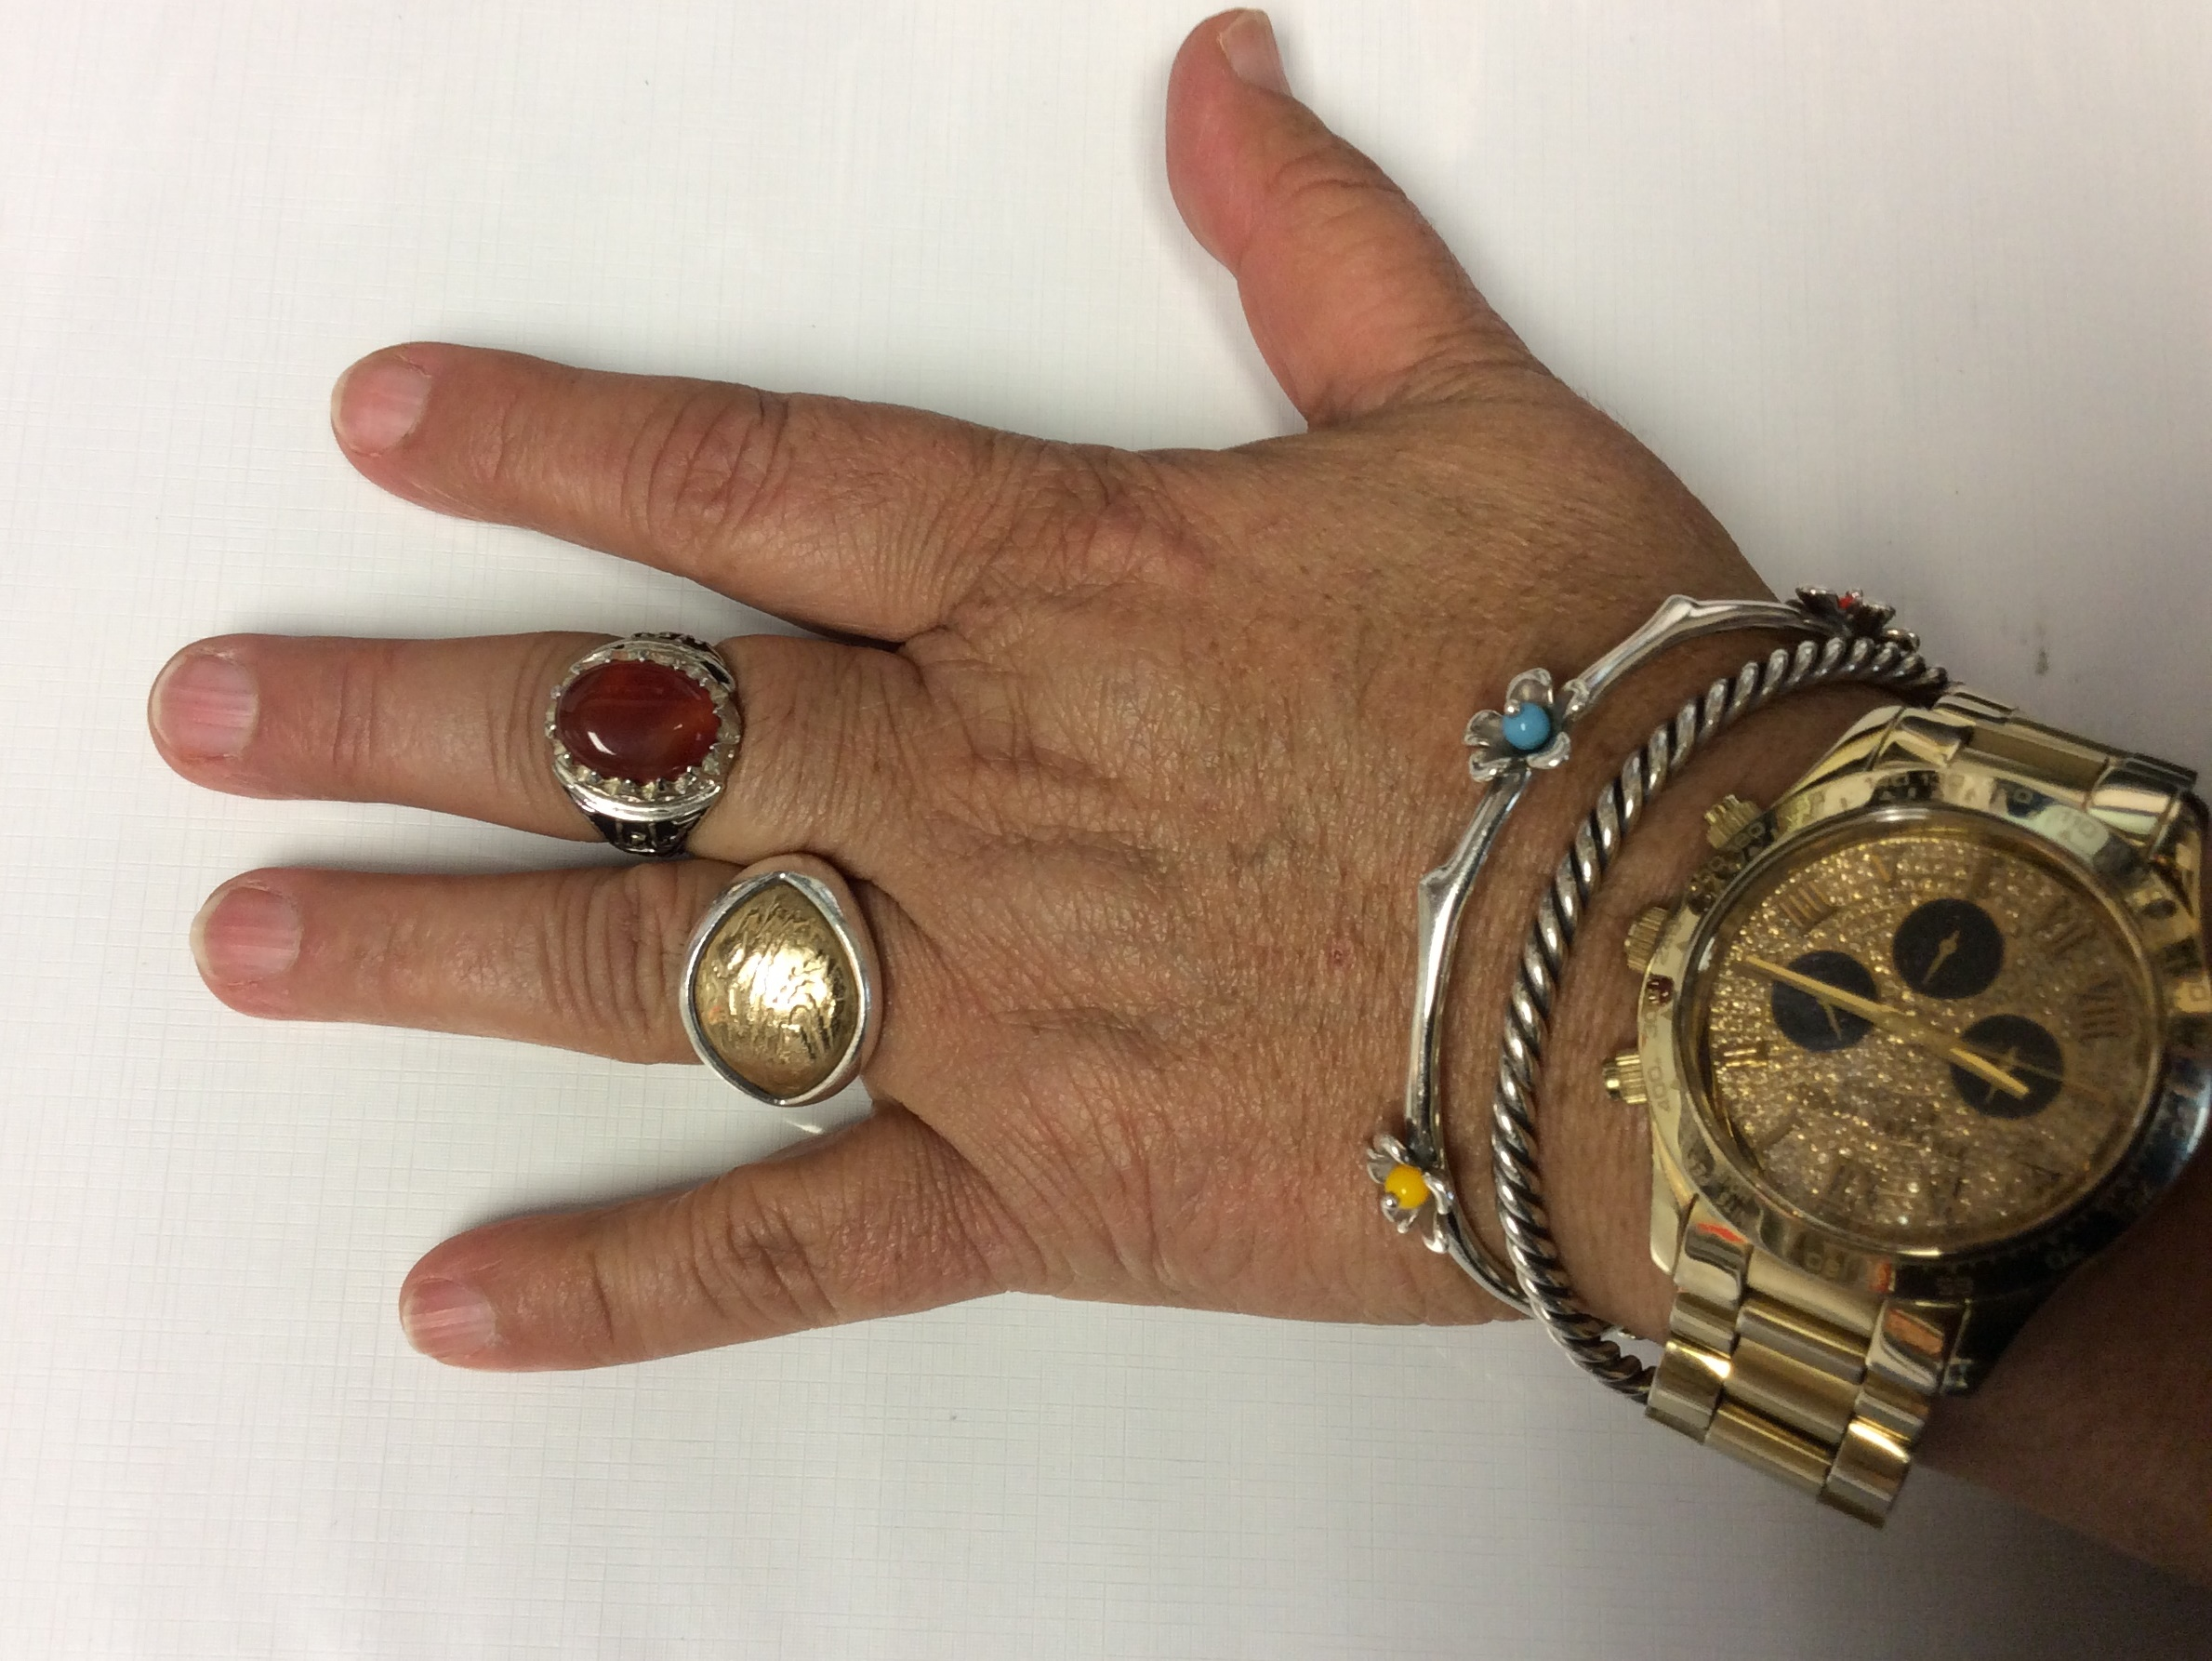 Hand with multiple rings on